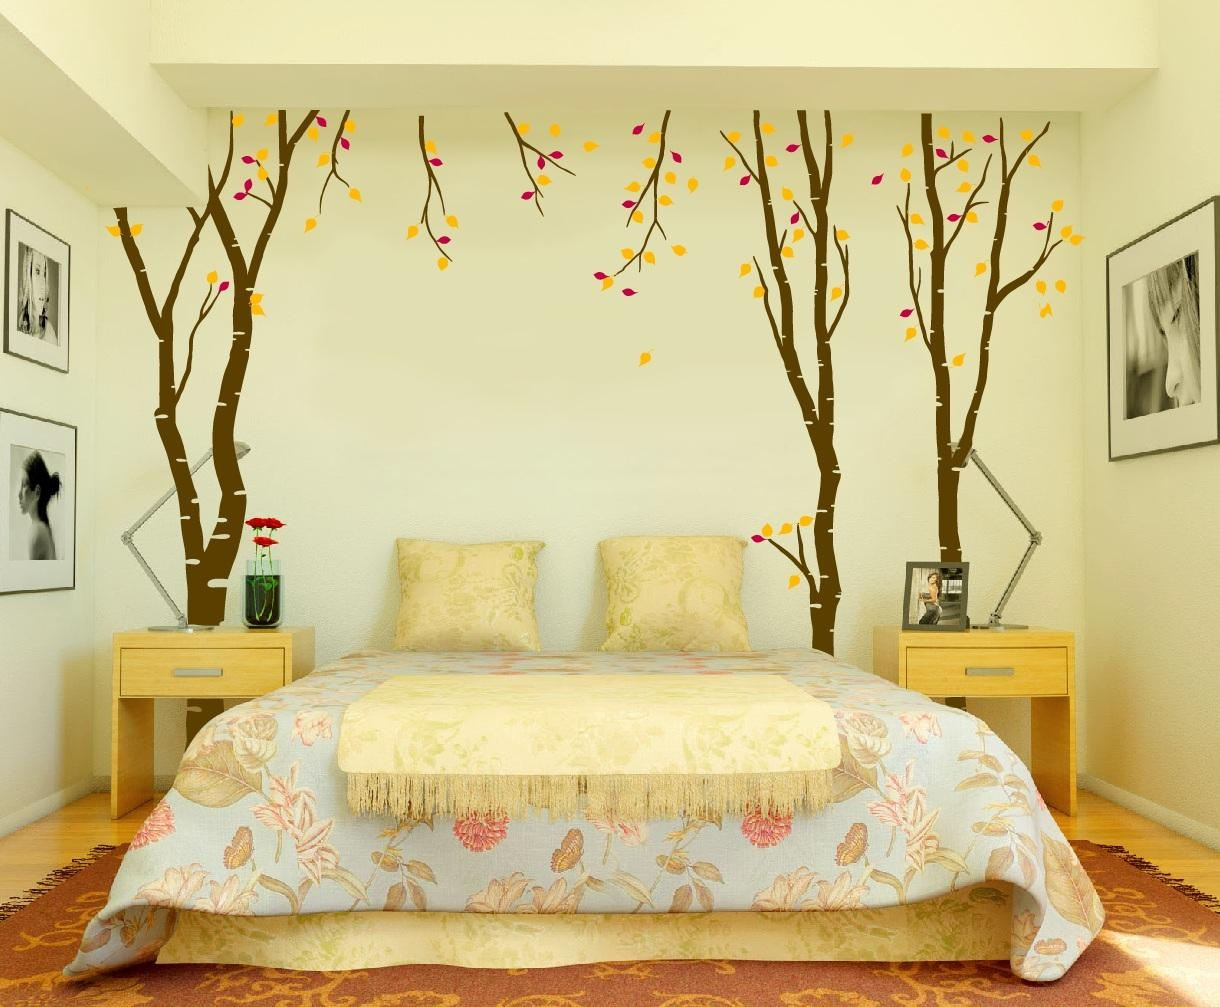 Wall Art Decals For Bedroom (Photos And Video) | Wylielauderhouse Inside Wall Art For Bedrooms (View 4 of 21)